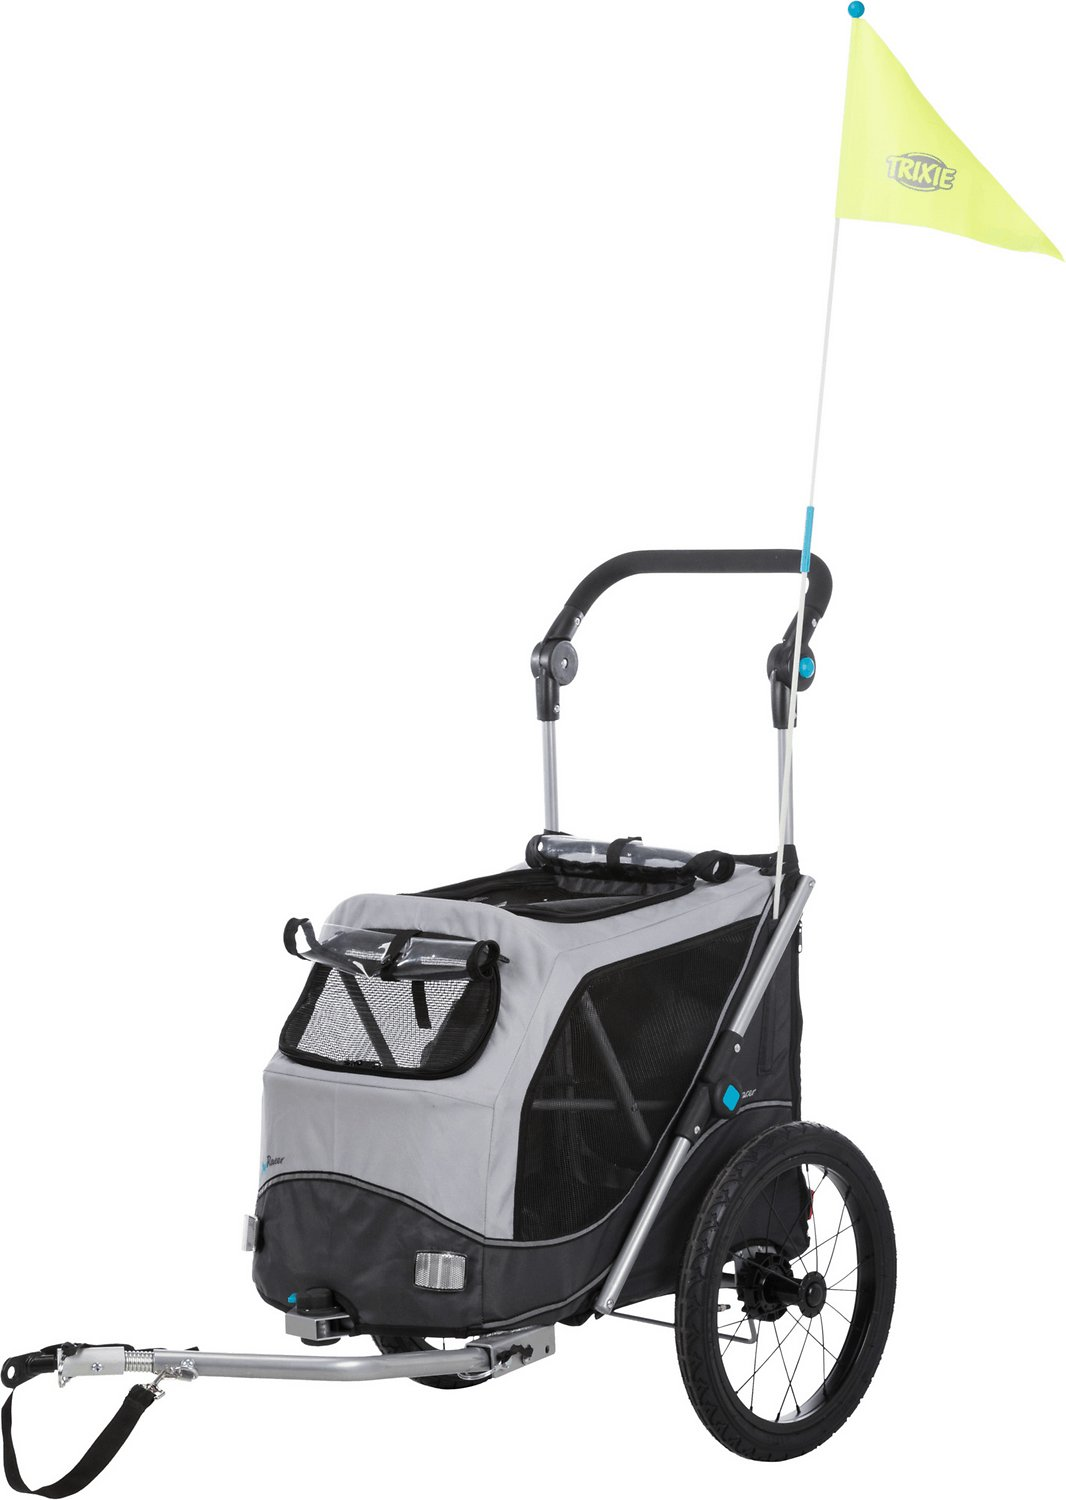 Trixie Premium Quick Fold Dog Bike Trailer